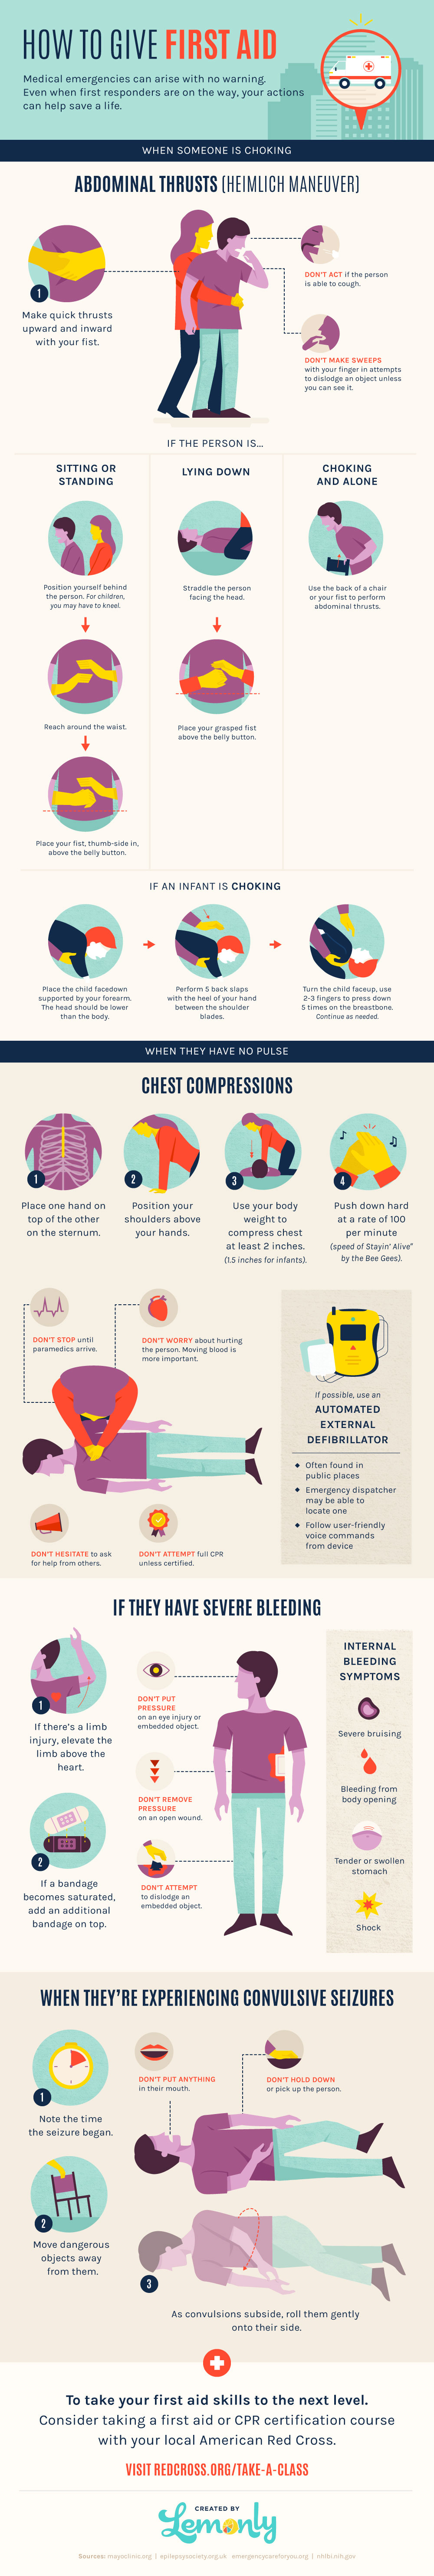 How to Give First Aid Infographic - Lemonly